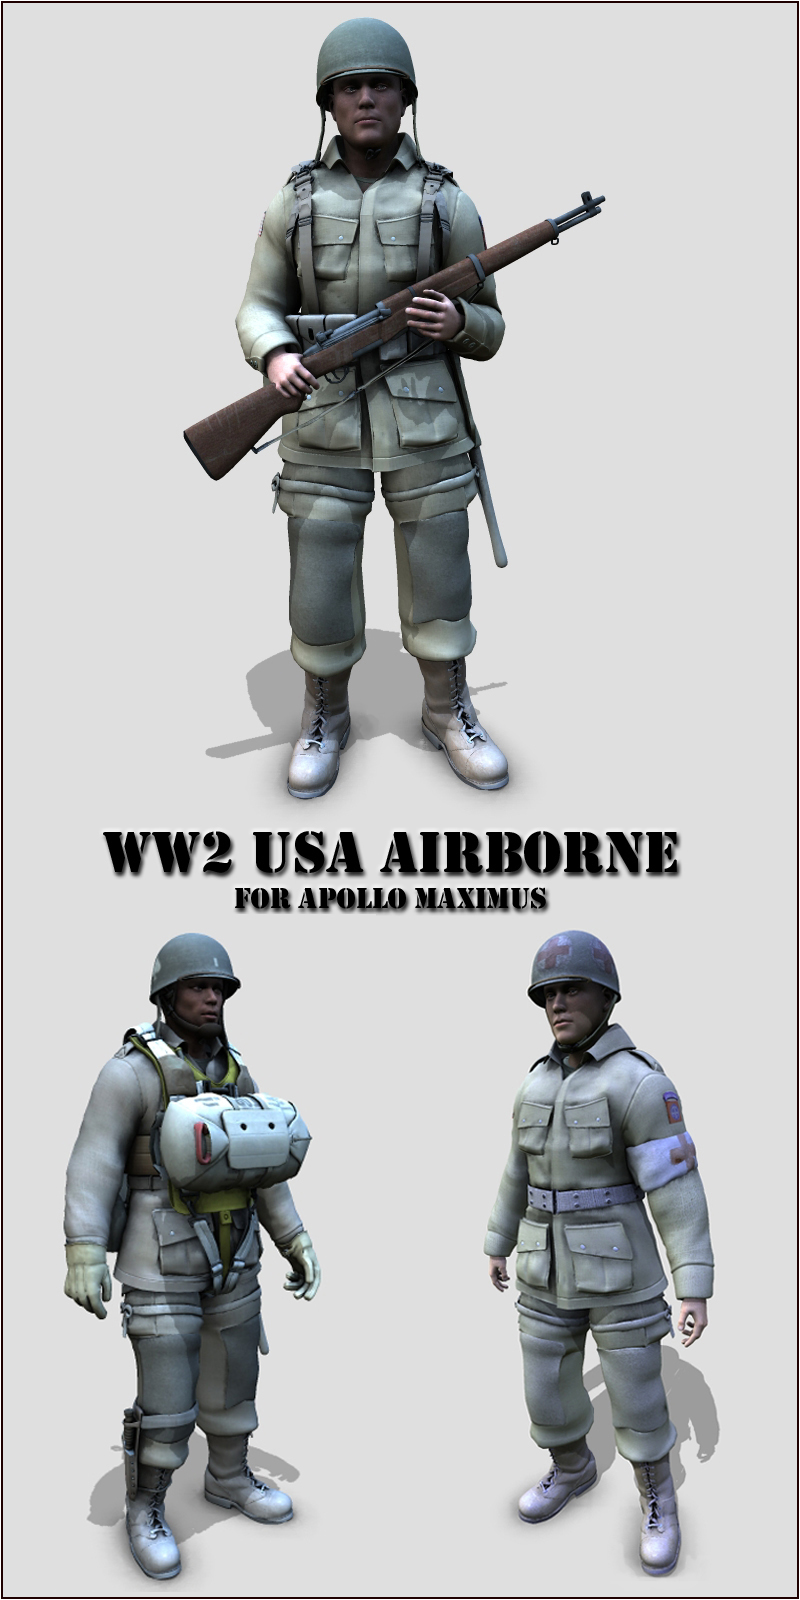 WW2 USA airborne - Extended License